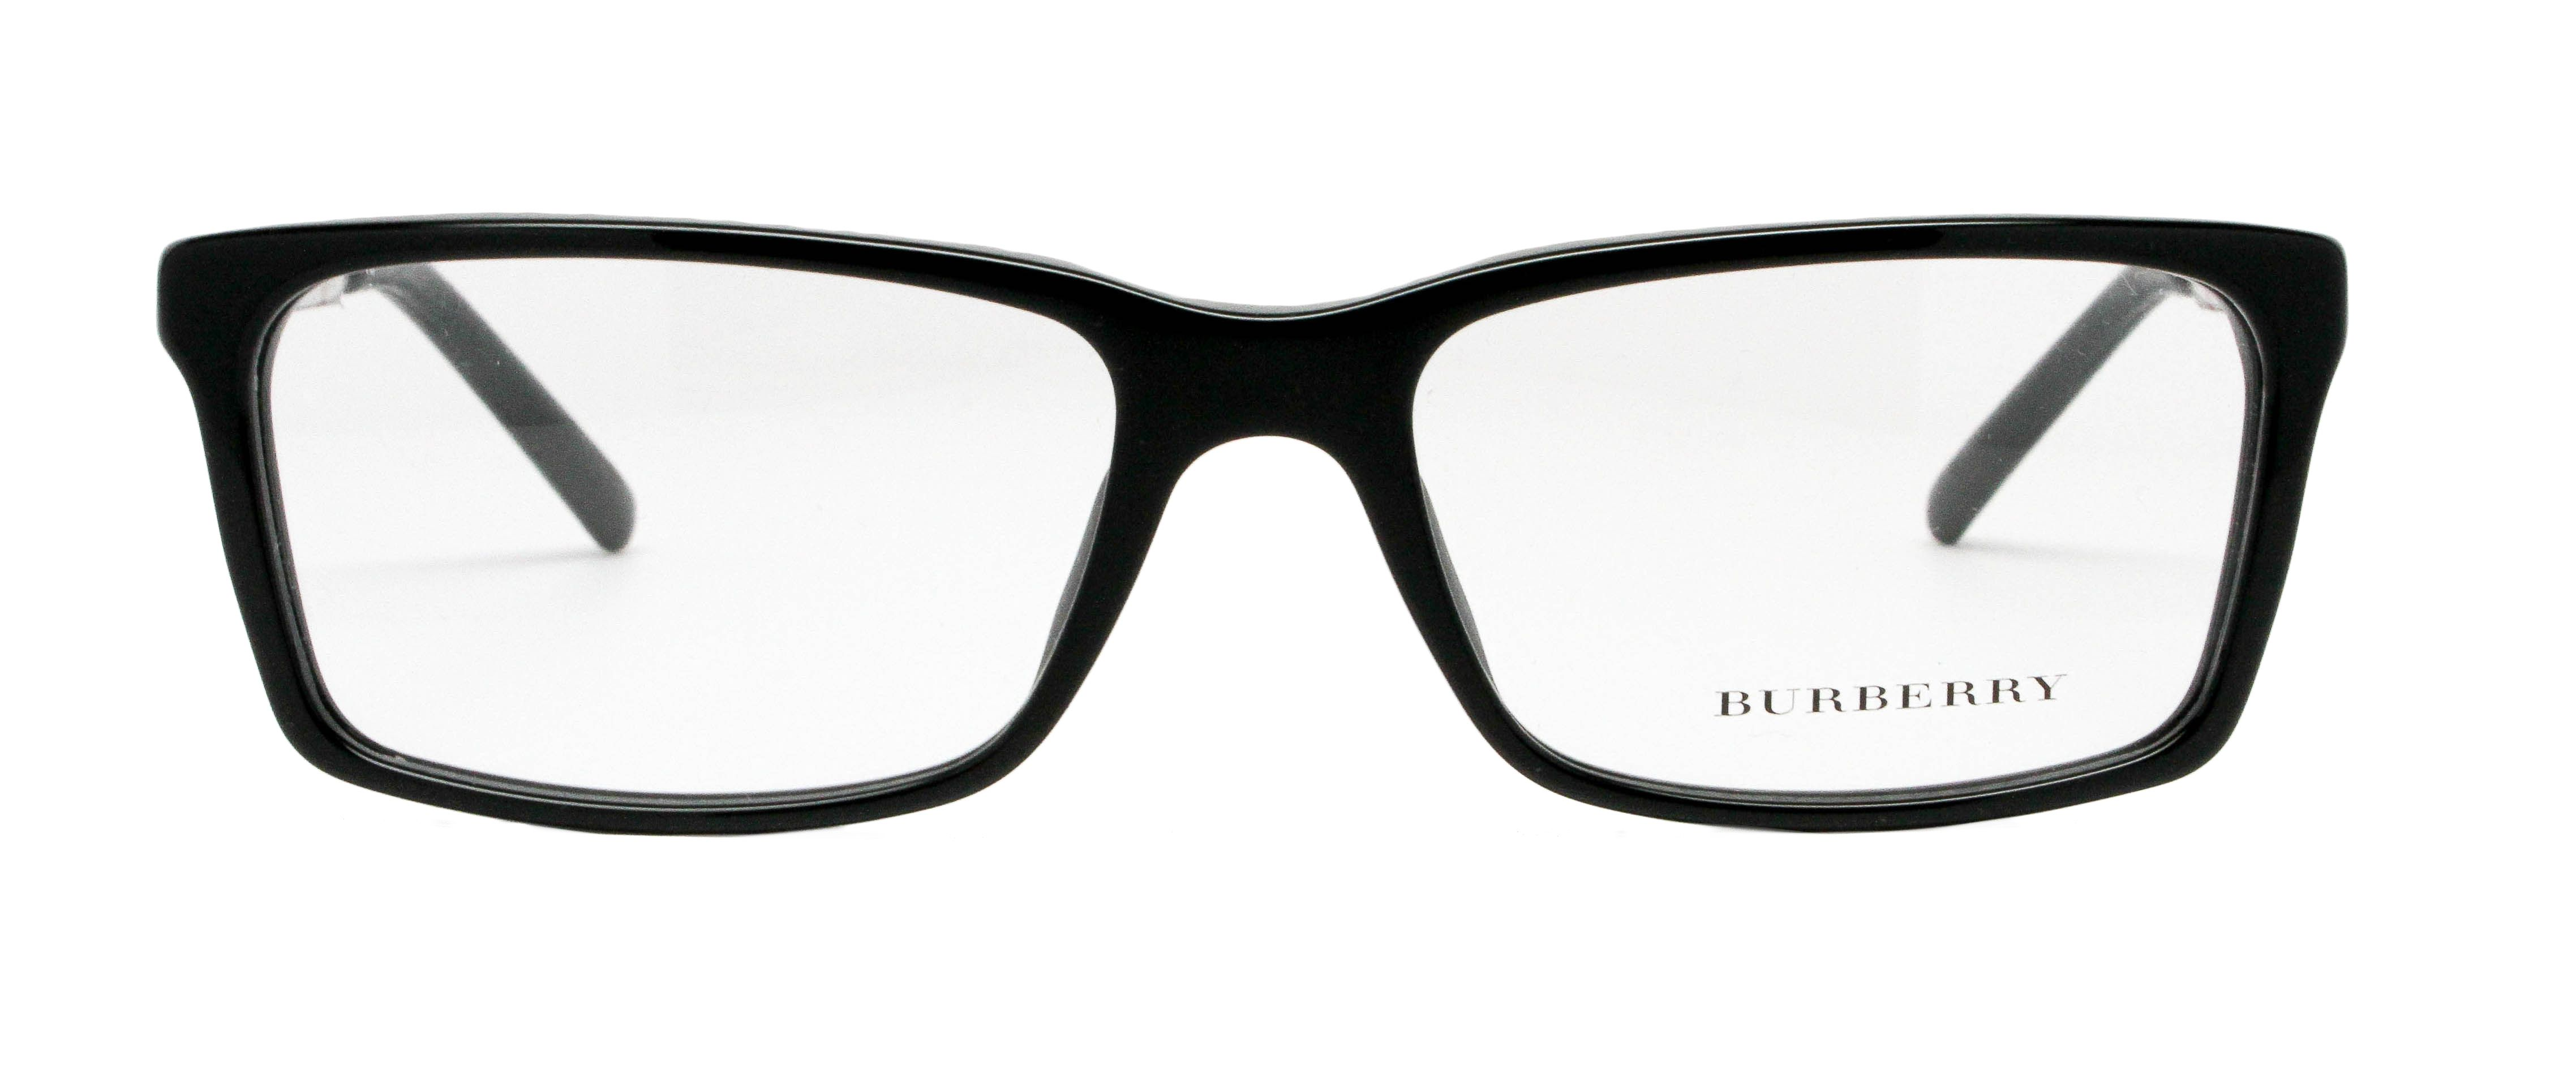 d6c9f783881 Burberry BE2159q black frames are Chic and simple